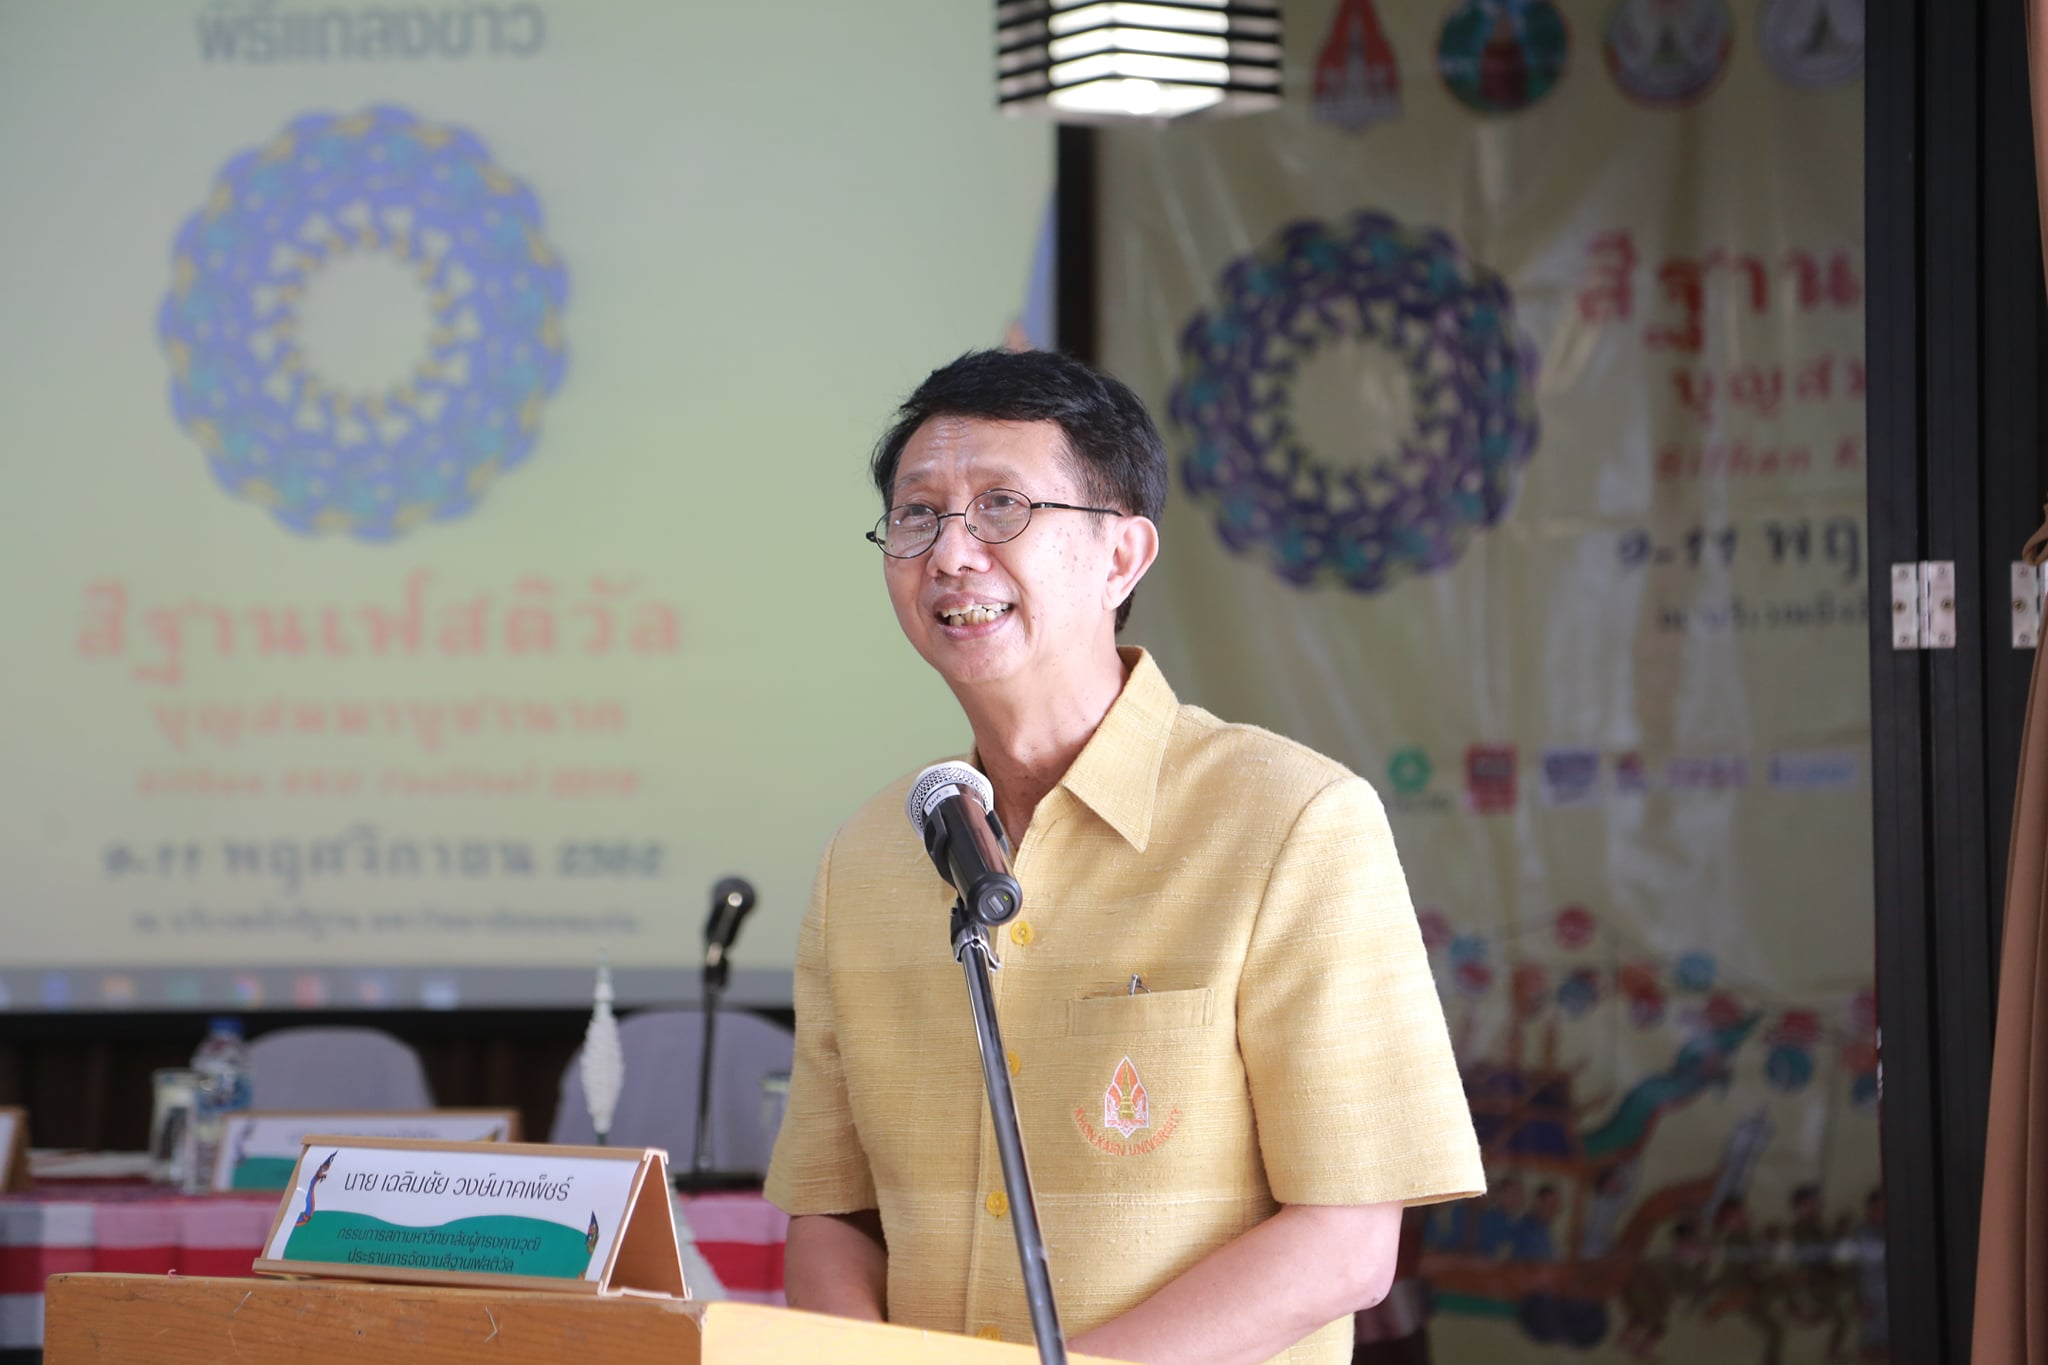 Mr. Chalermchai Wongnakpet, a qualified member of KKU Council and the Chairperson of Sithan Festival